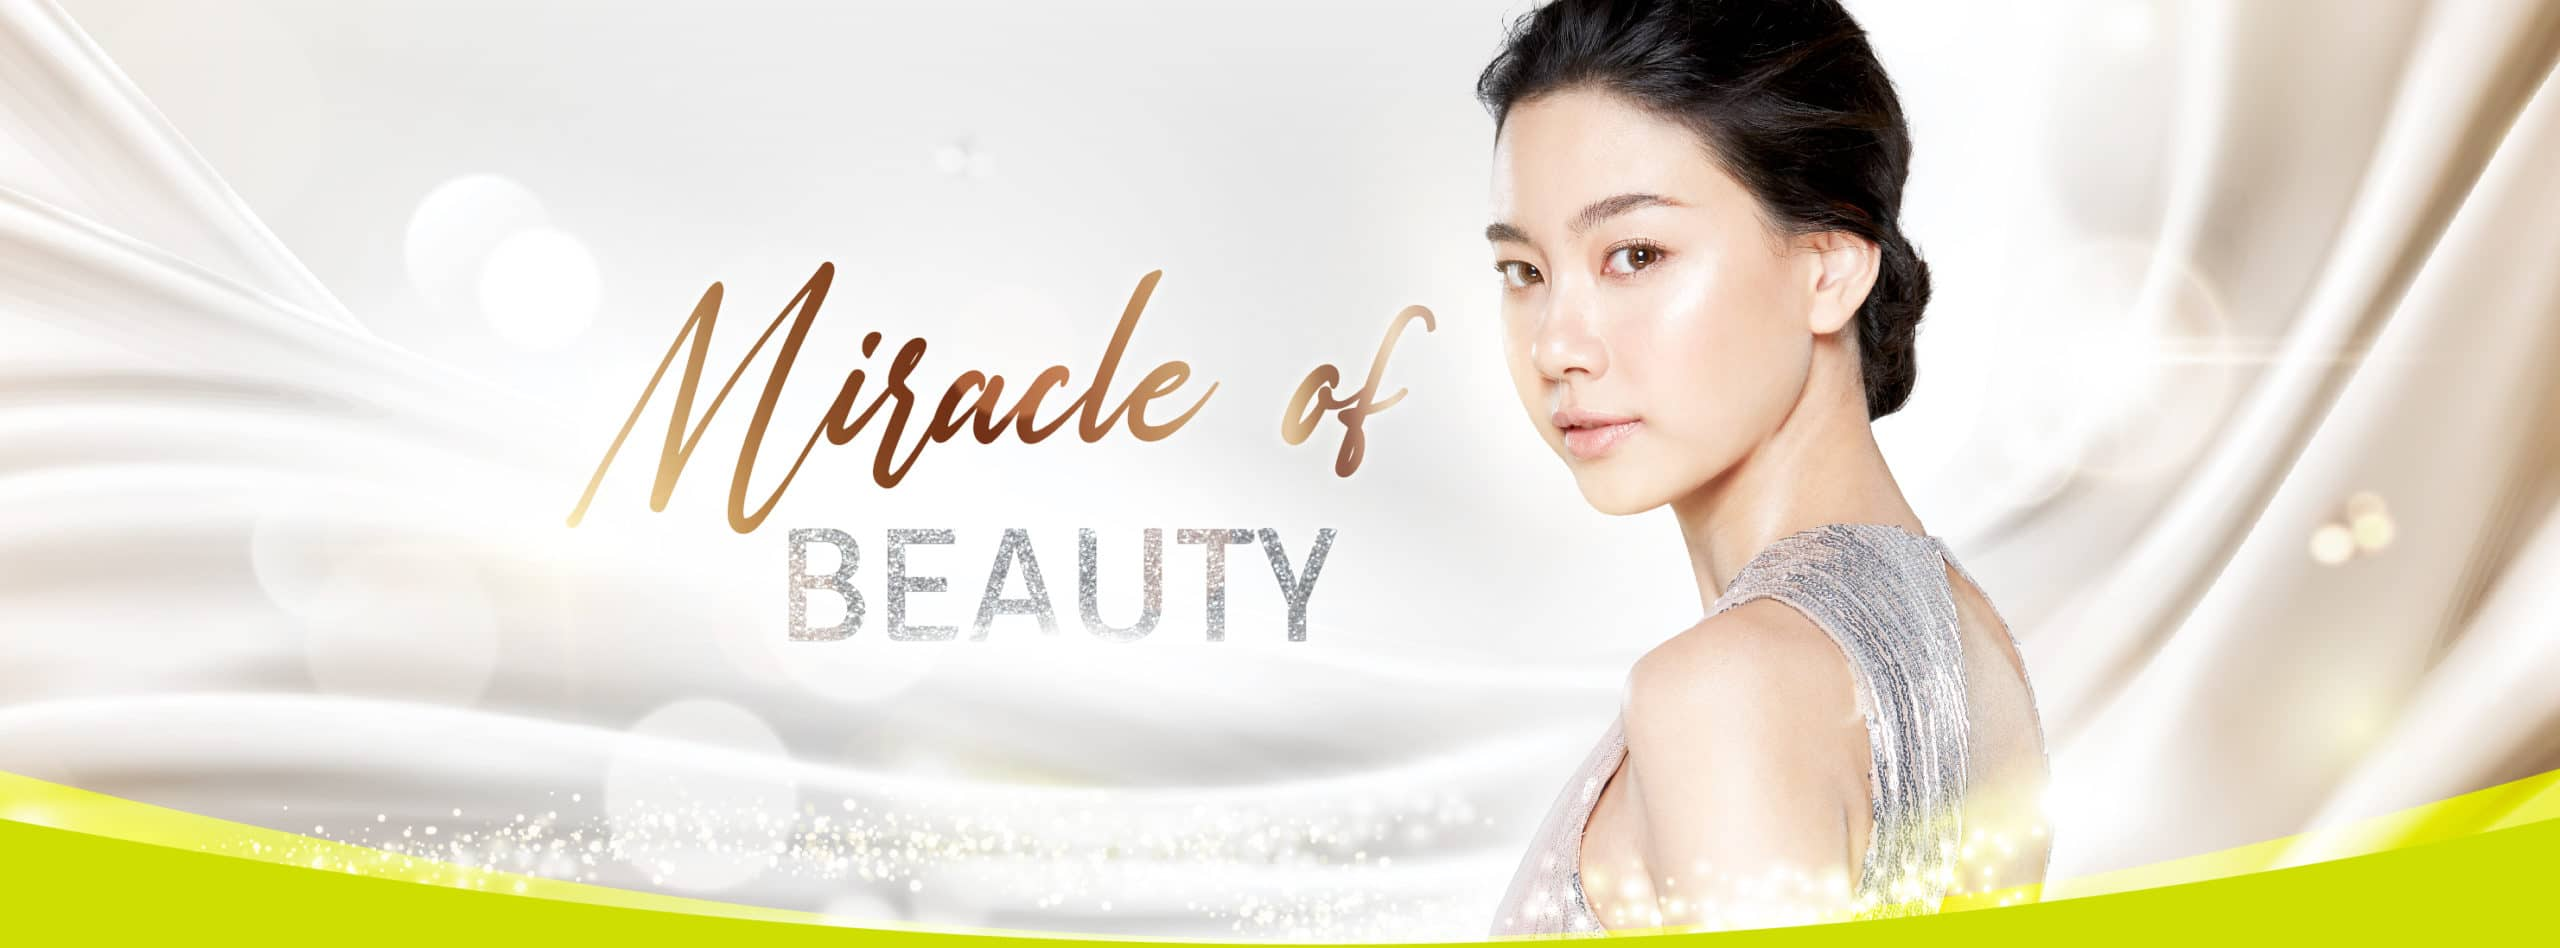 AD 63-10 MIRACLE BEAUTY-06